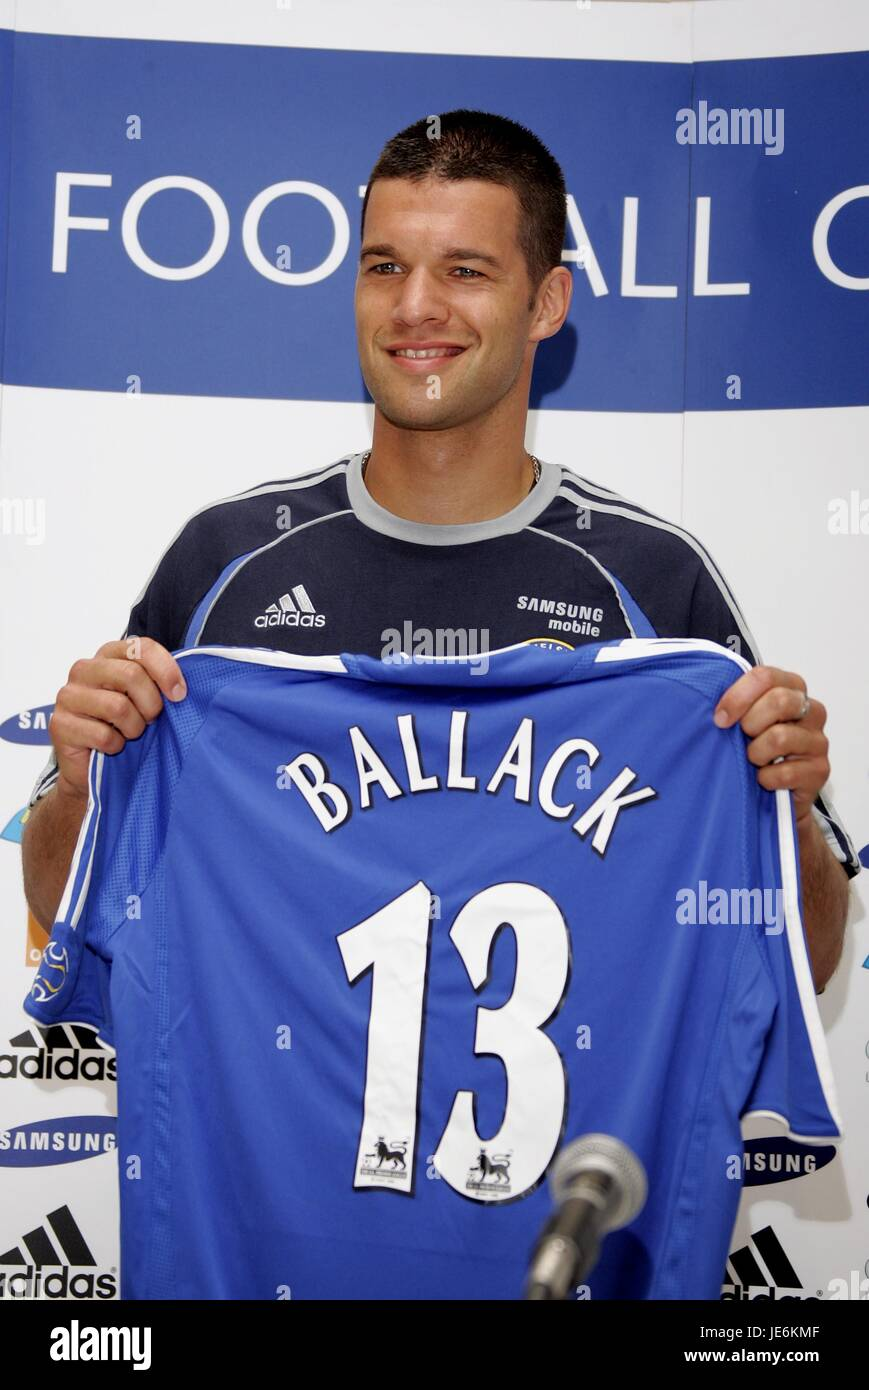 new style 73d75 06c23 MICHAEL BALLACK CHELSEA FC BEVERLY HILLS HOTEL LOS ANGELES ...